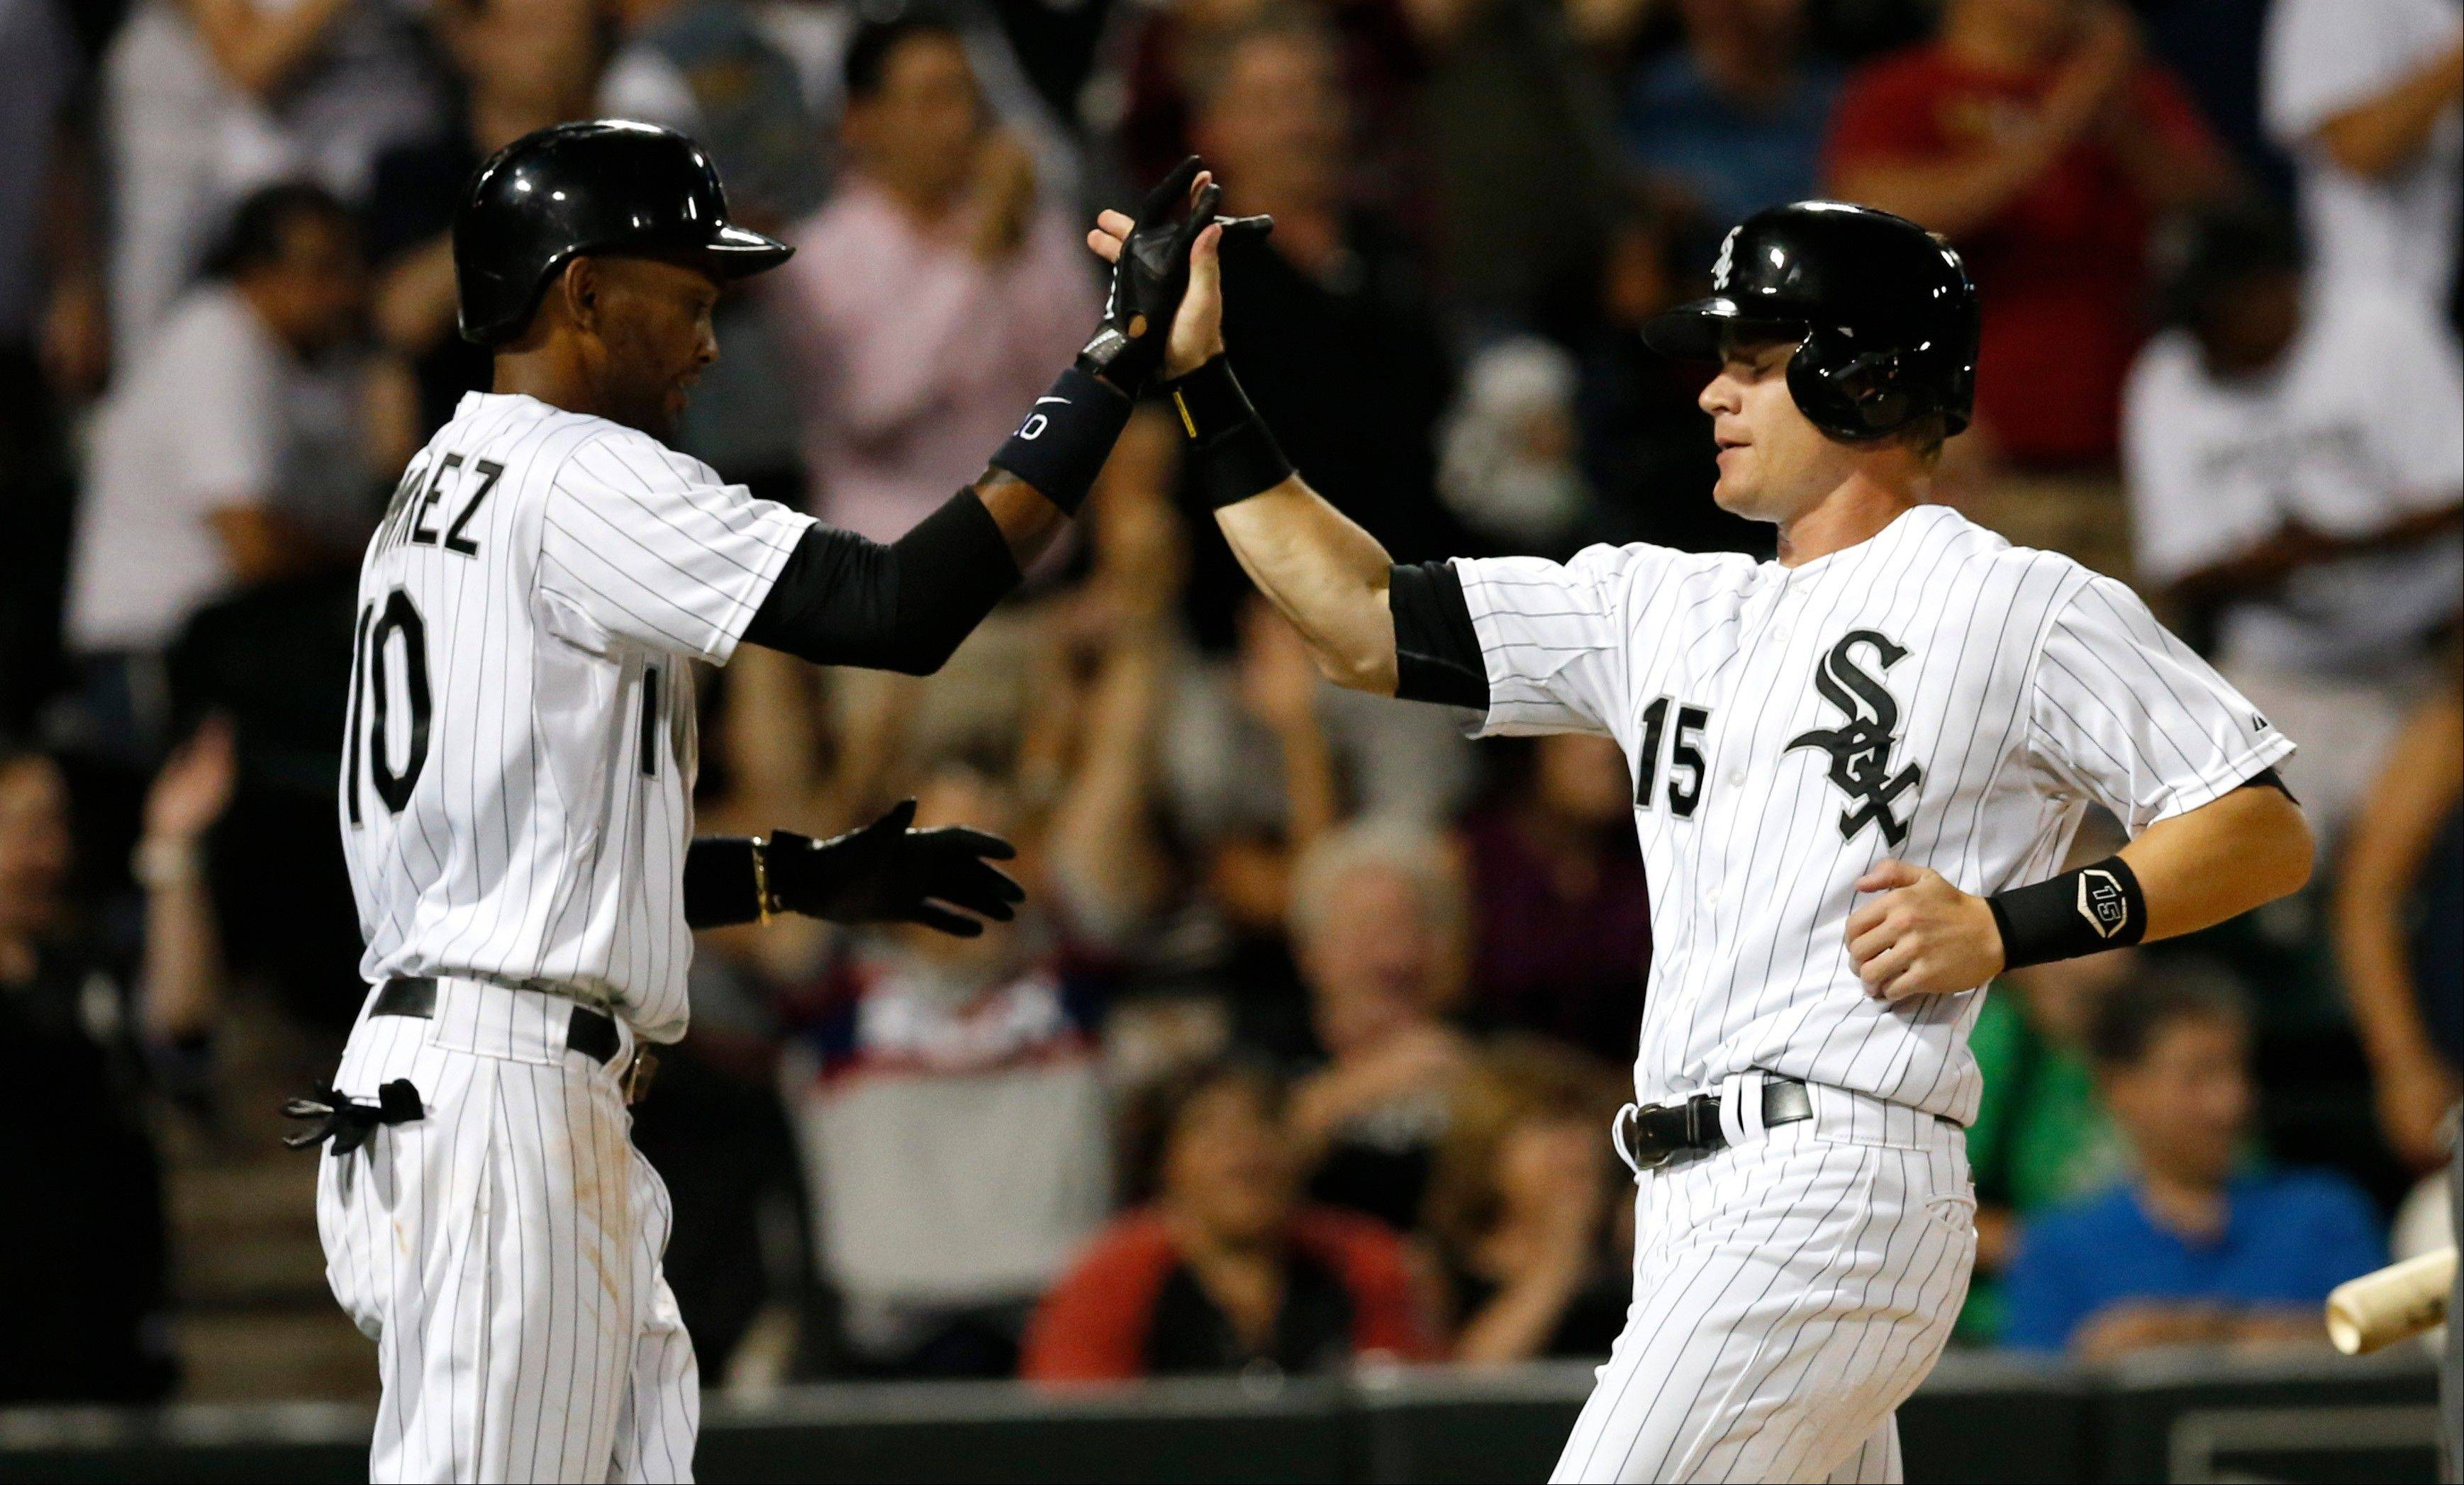 Alexei Ramirez, right, greets Gordon Beckham at home after the pair scored on a RBI single by Jordan Danks during the eighth inning of a baseball game against the Houston Astros, Tuesday, Aug. 27, 2013, in Chicago.